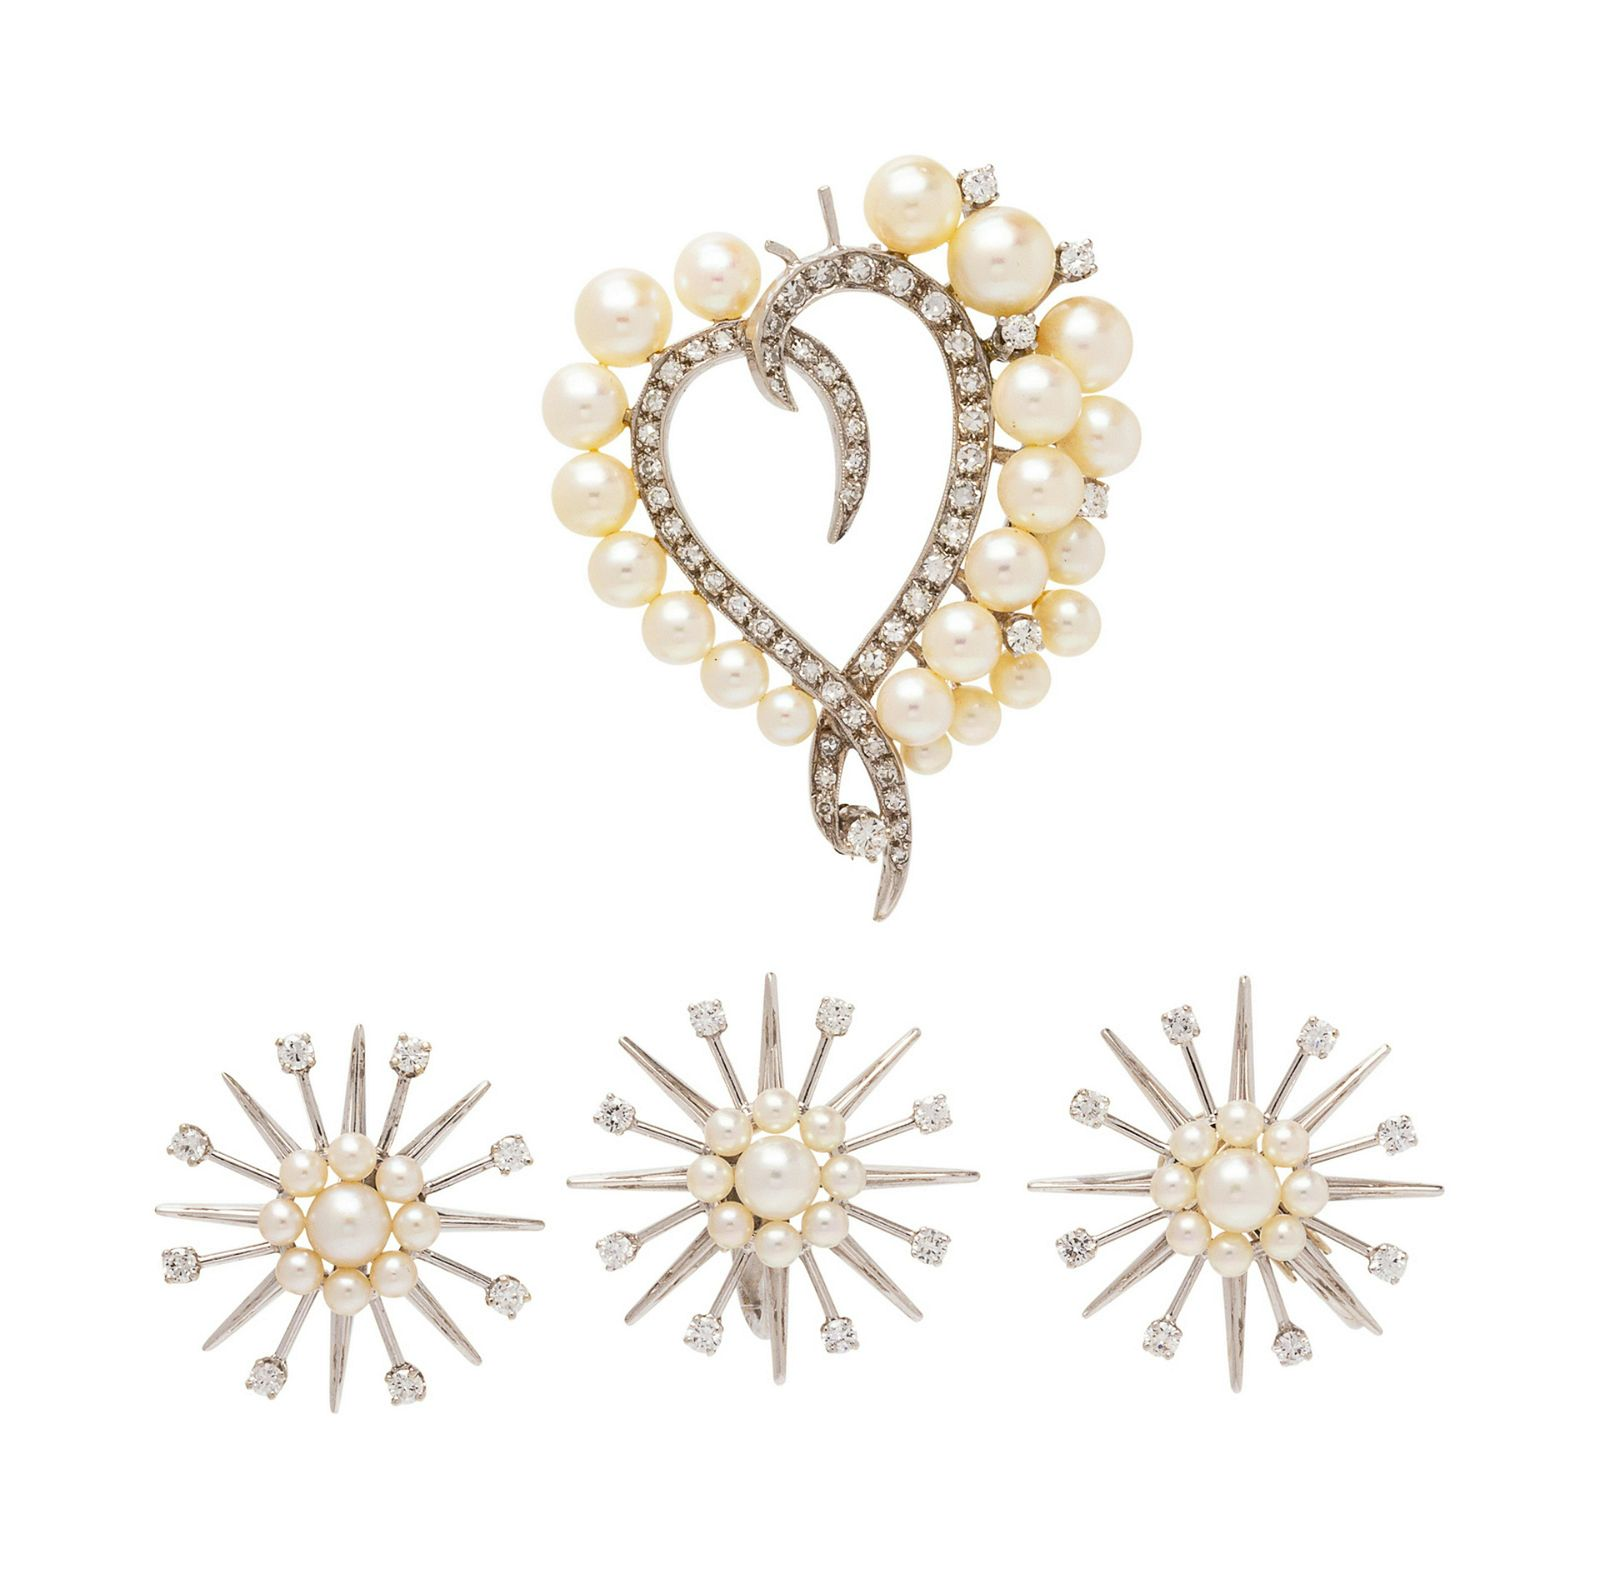 A Collection of White Gold, Cultured Pearl and Diamond